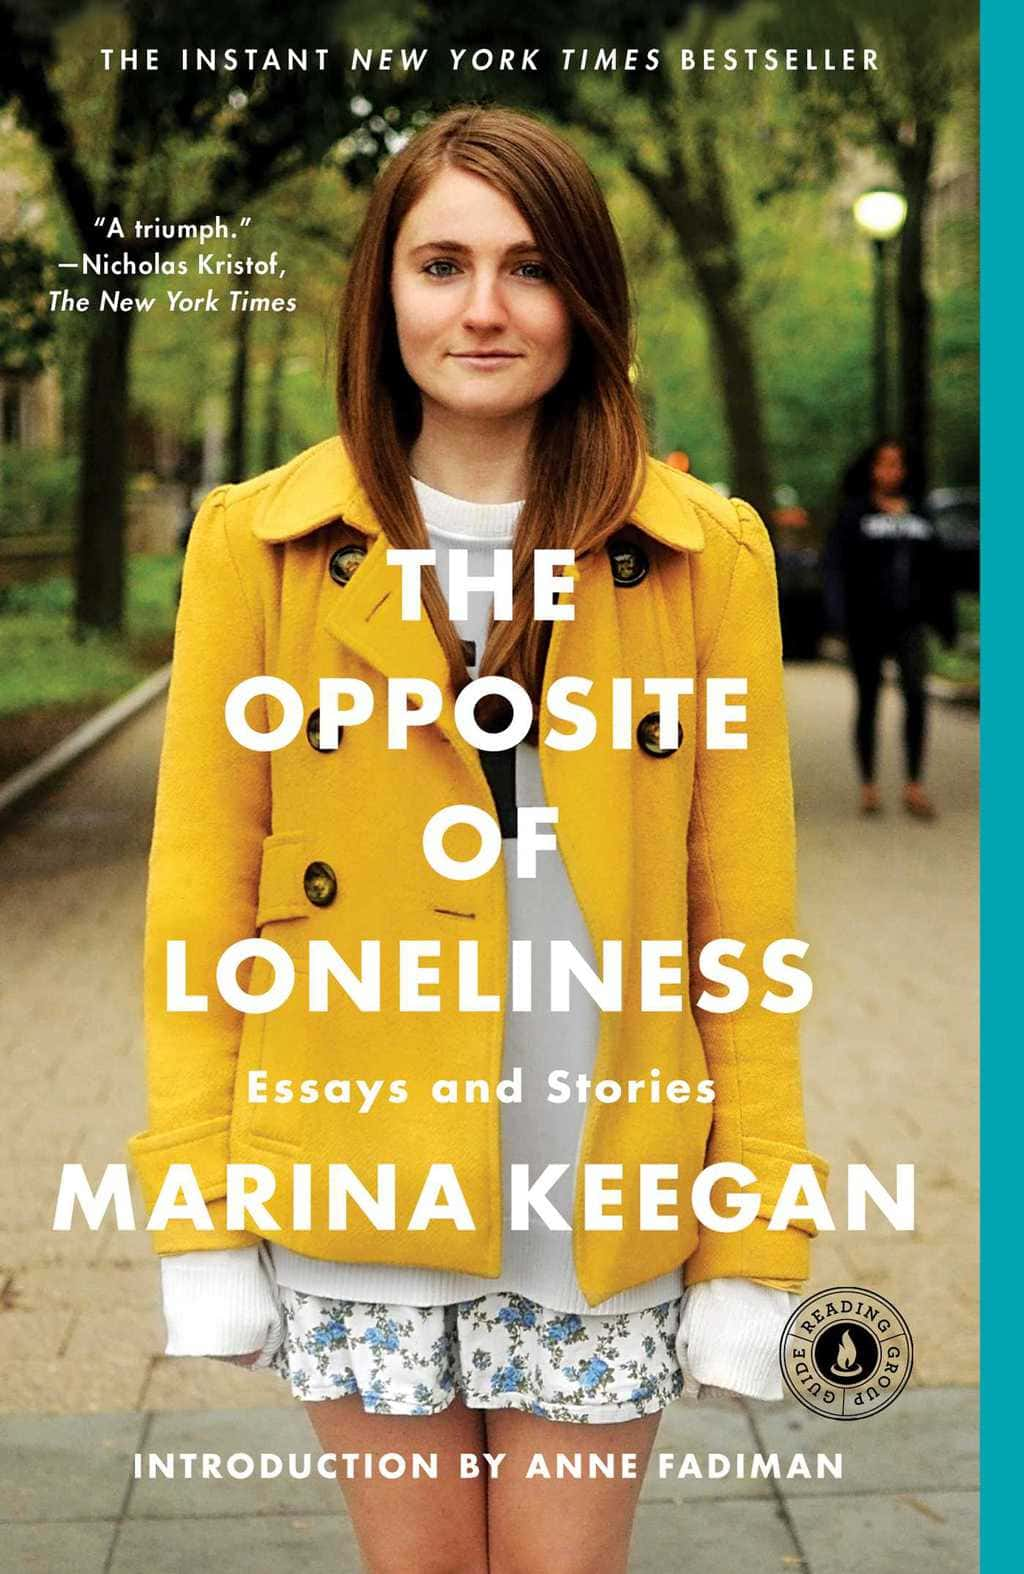 The Opposite of Loneliness book cover